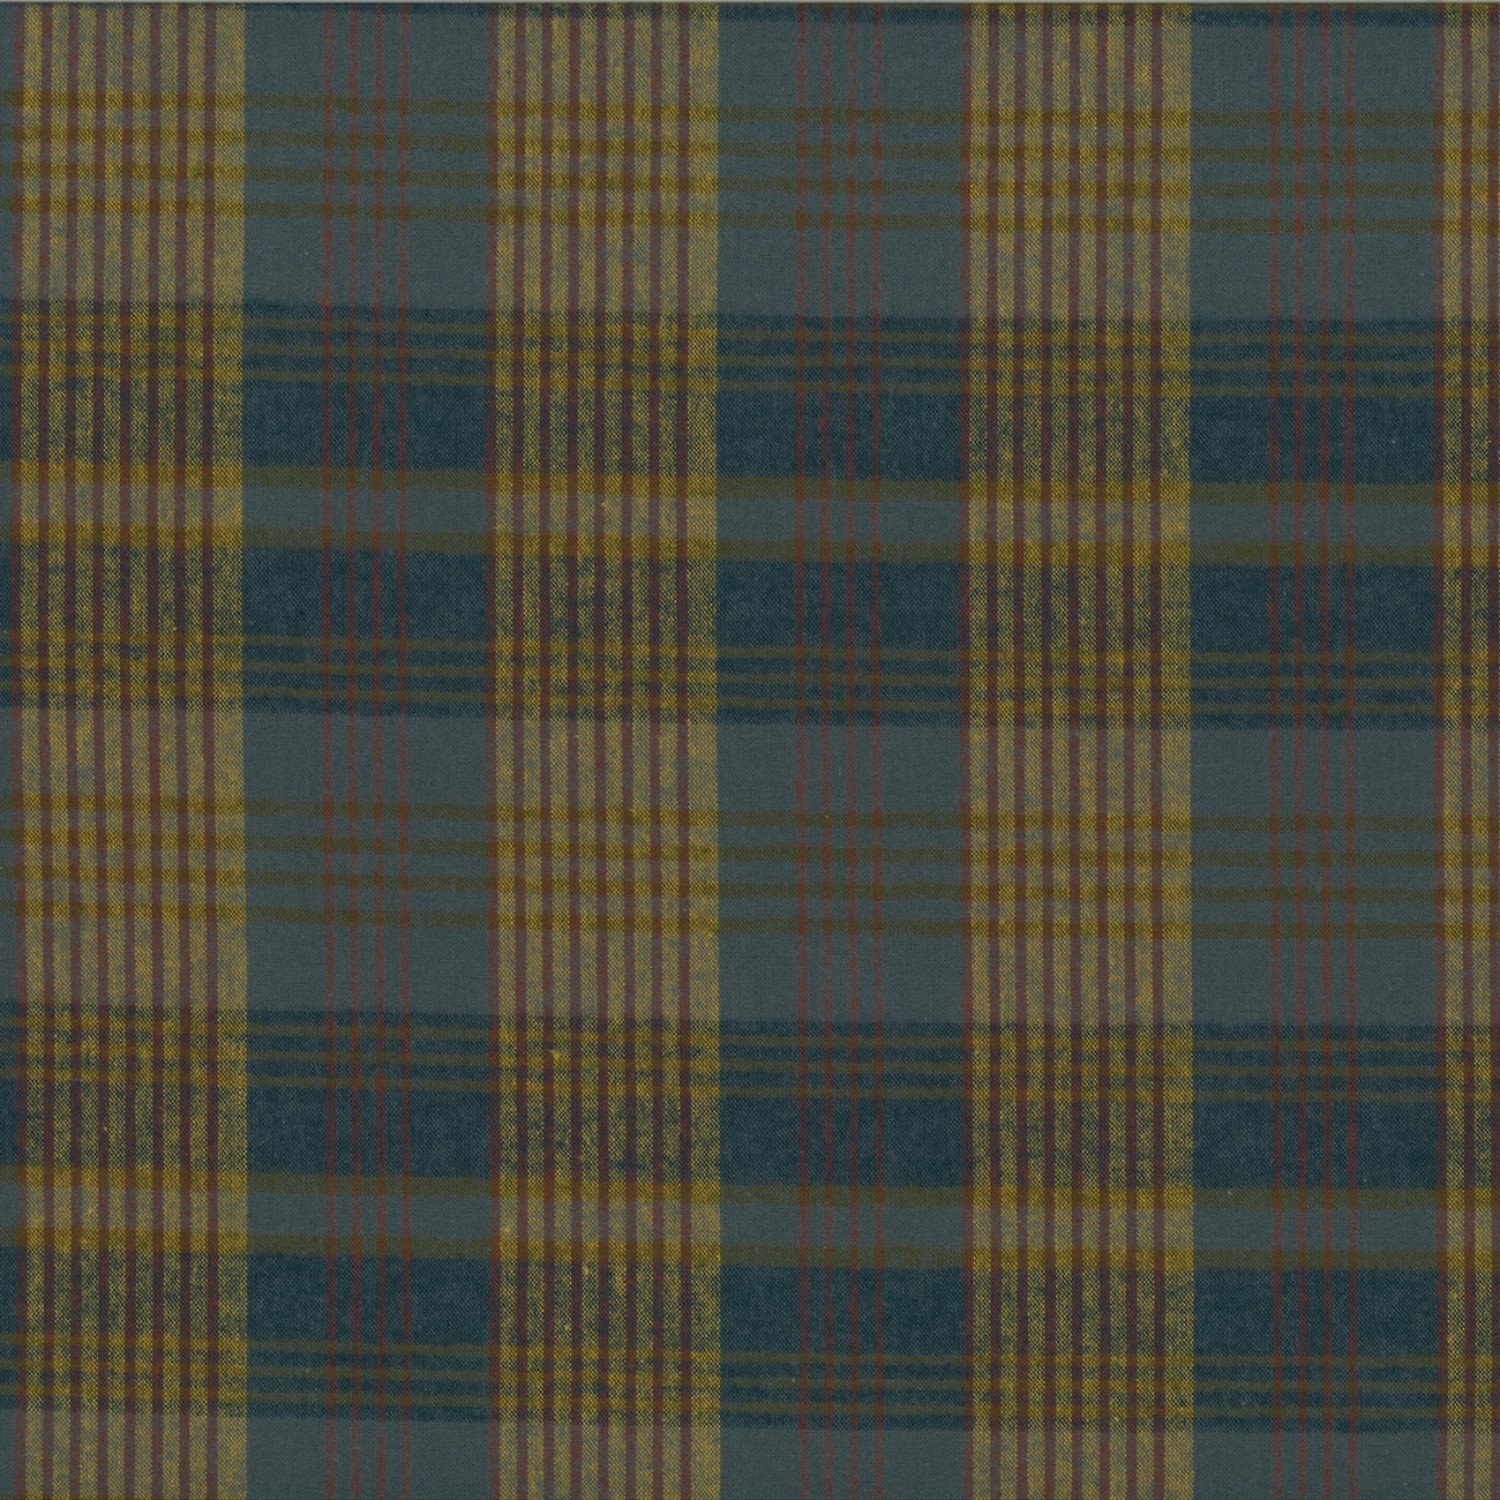 Centenary Collection - Brushed Cotton Plaid Blue/Rust